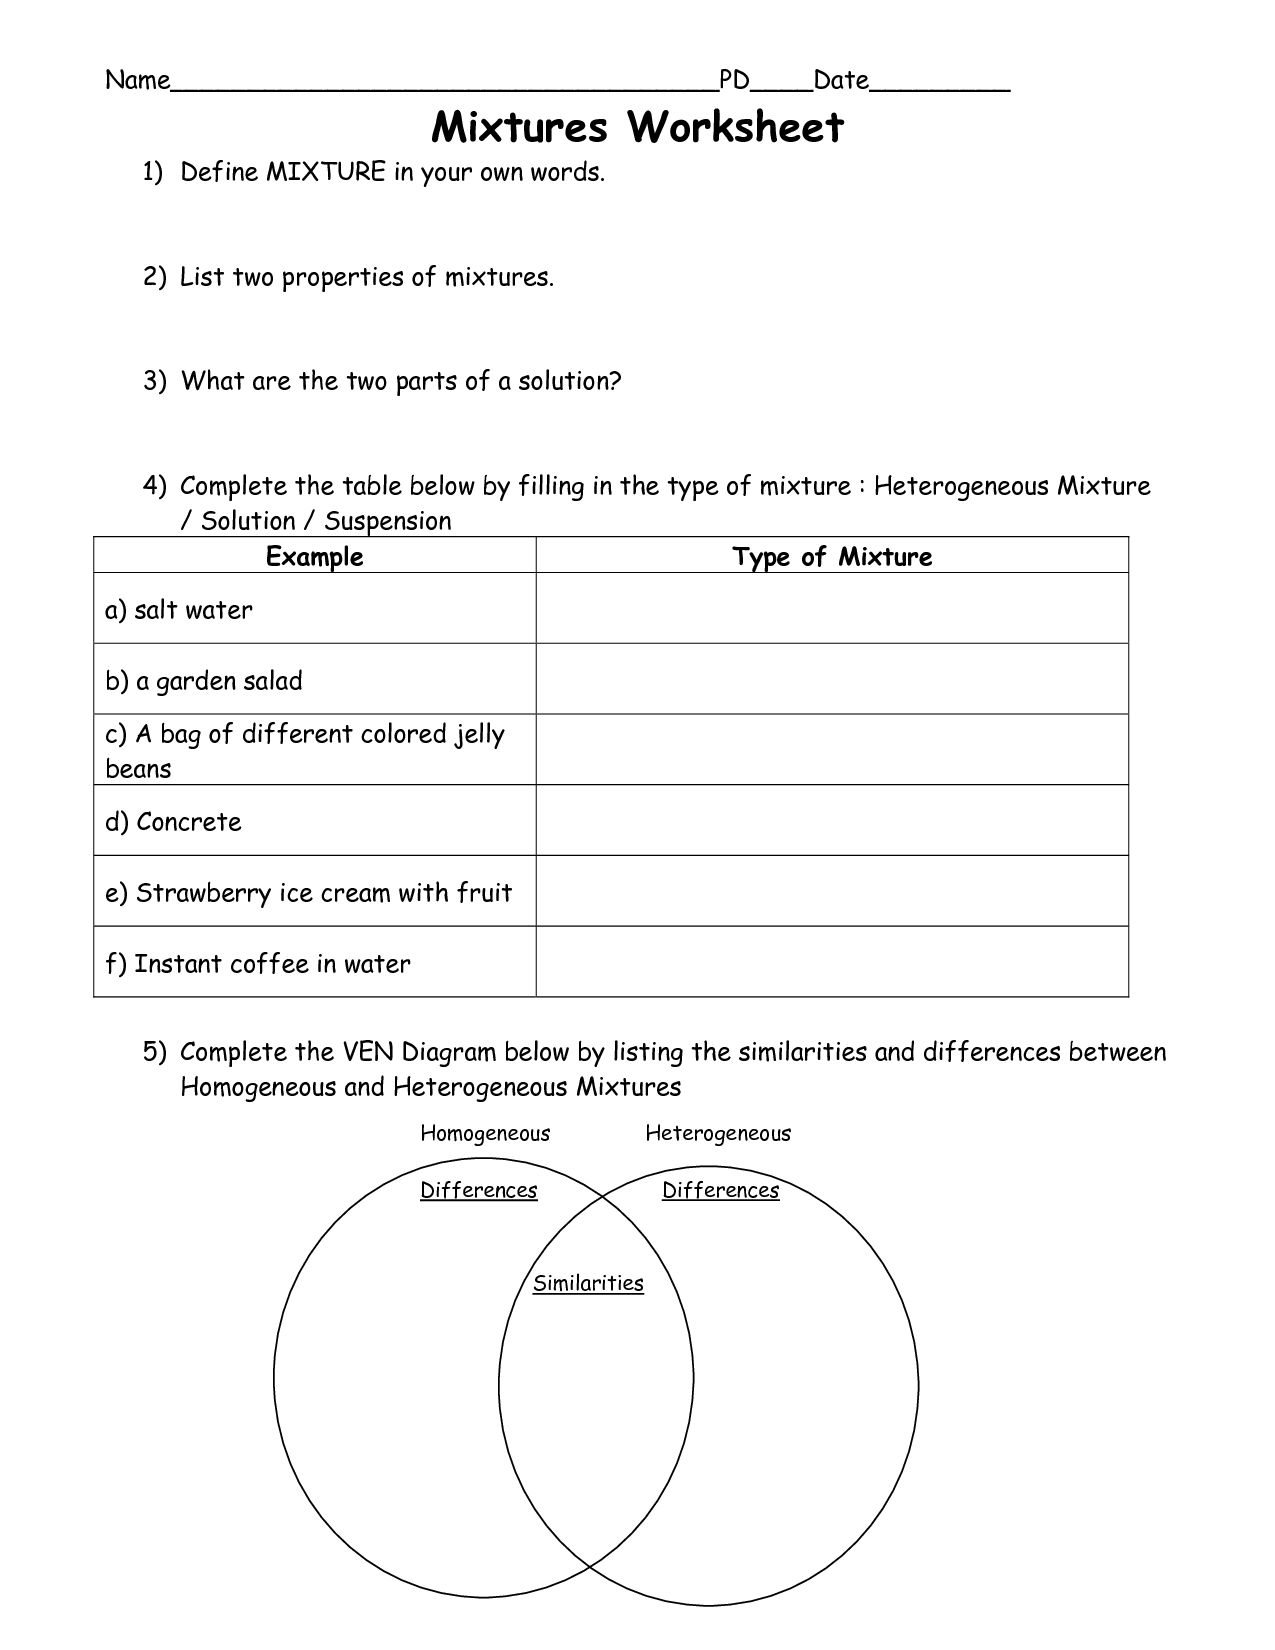 Worksheets Mixtures And Solutions Worksheets elements of art worksheets scope work template handout template